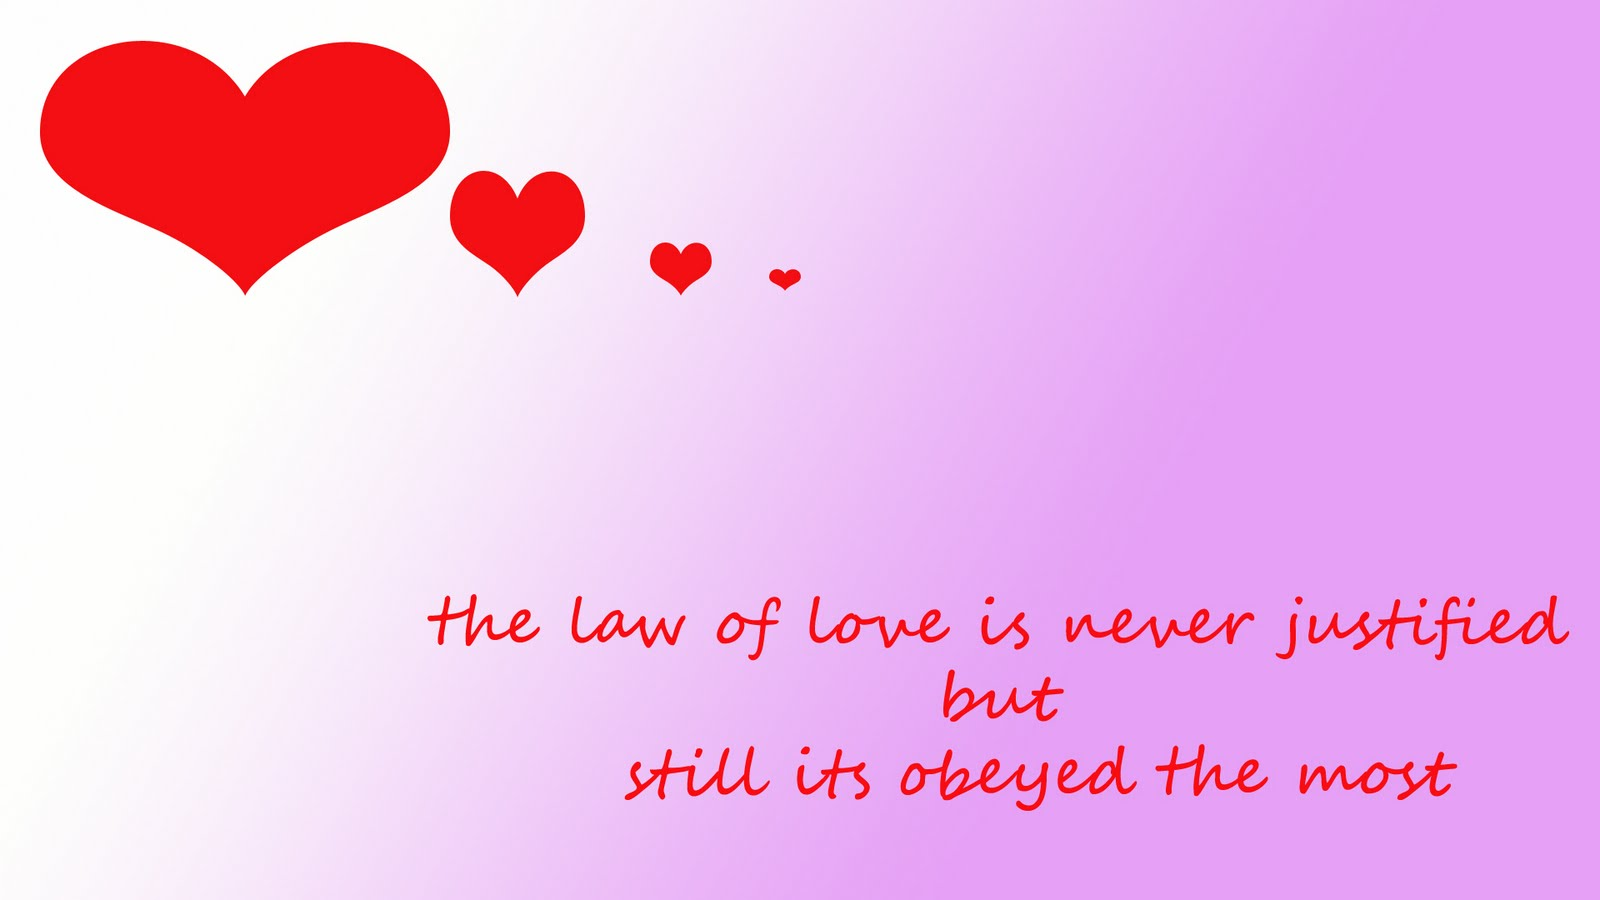 Love Wallpaper With Feelings : Love feelings and emotions: law of love wallpaper